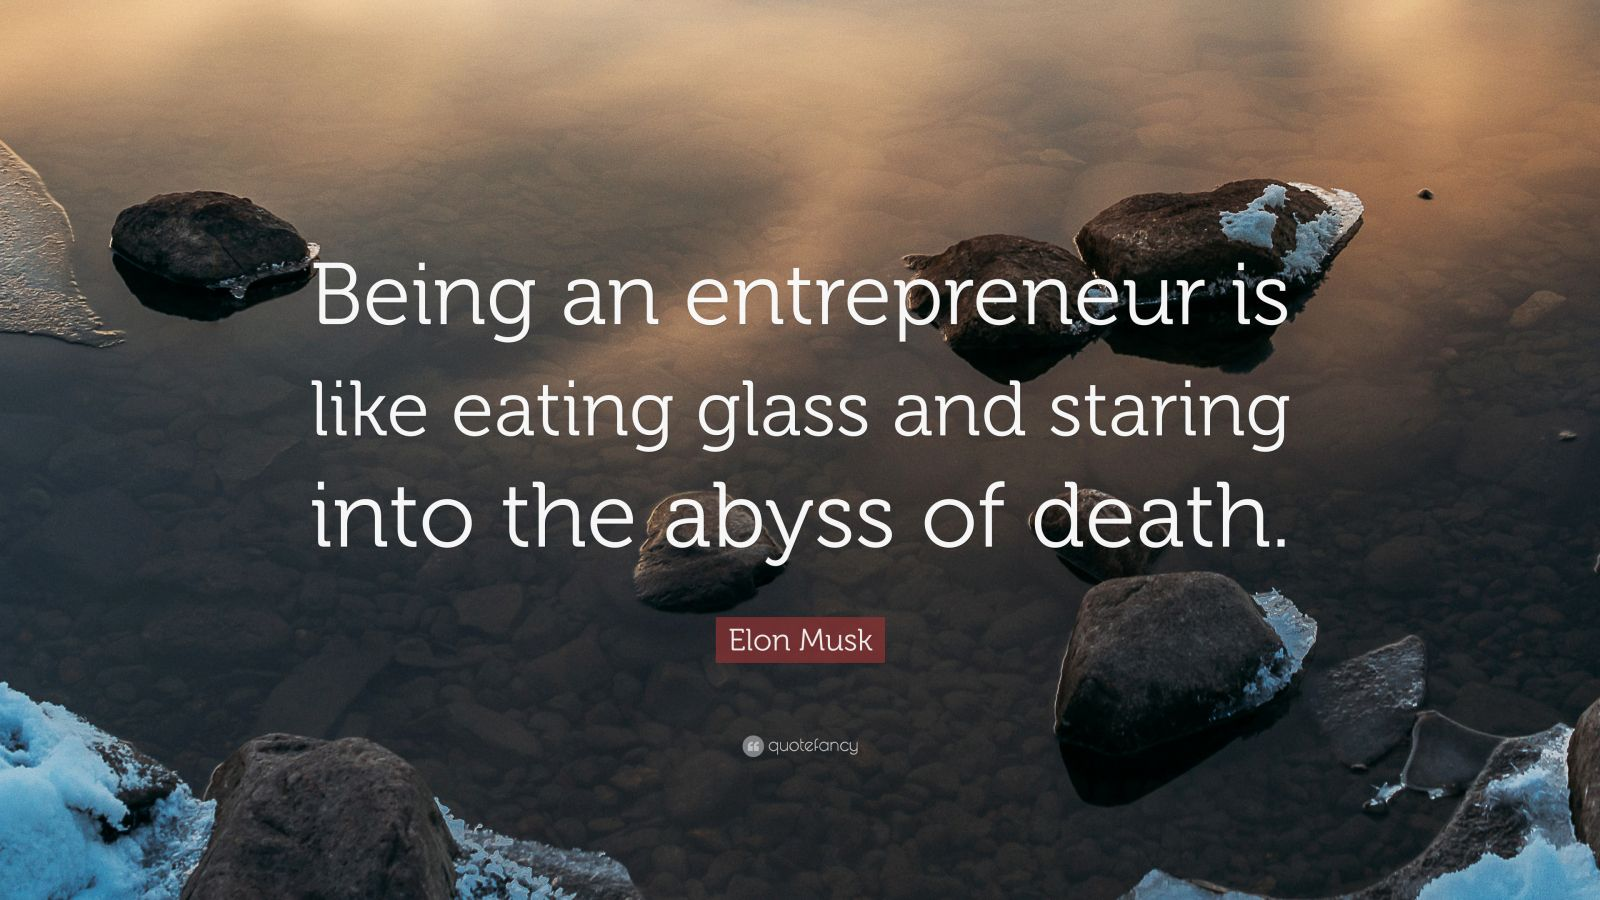 being an entreprenuer Elements entrepreneurship is the act of being an entrepreneur, or the owner or manager of a business enterprise who, by risk and initiative, attempts to make profits.